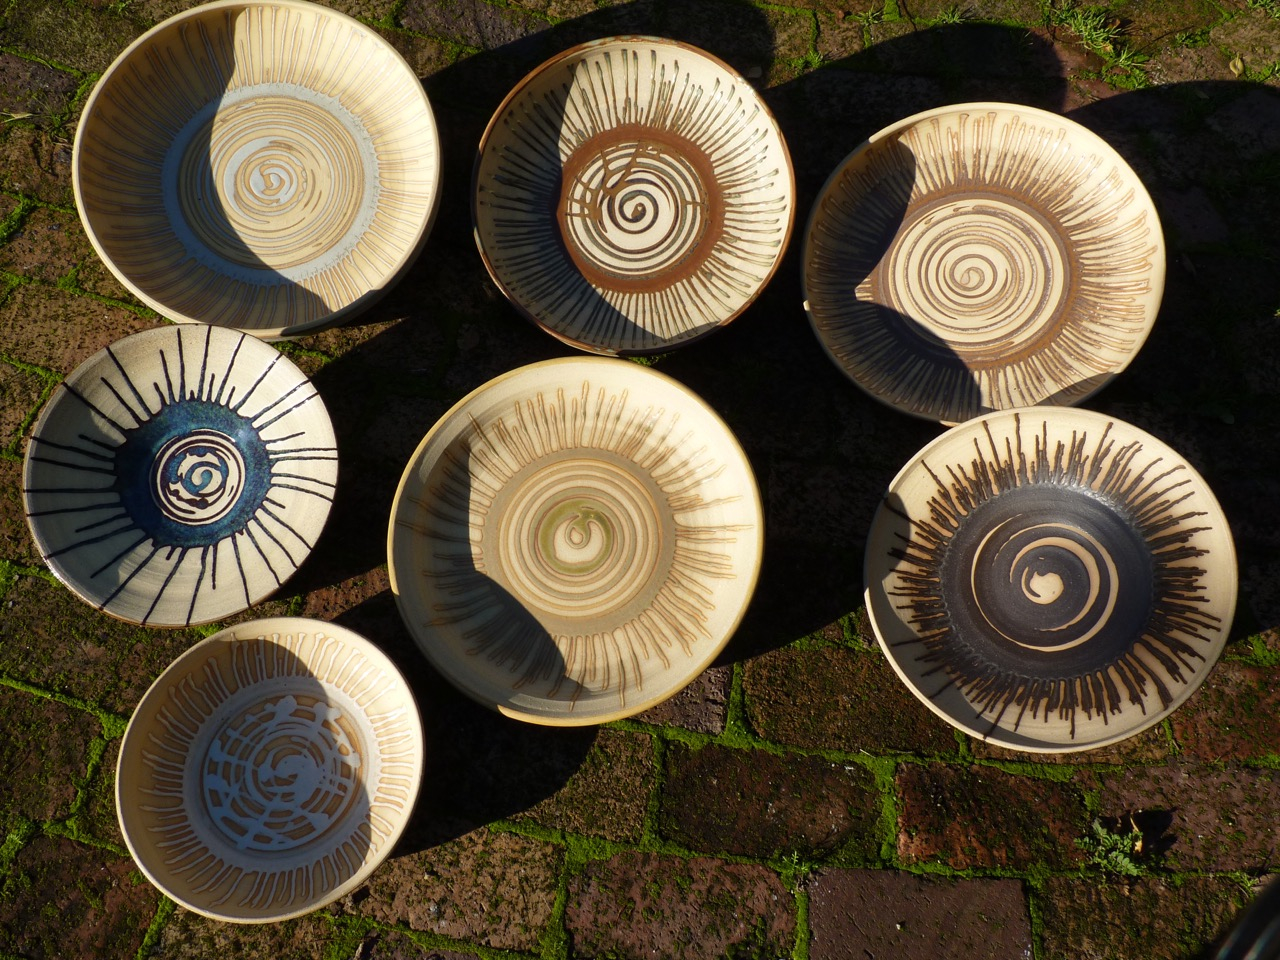 Large ceramic bowls by Konstanze Harms in the slanted evening sun.